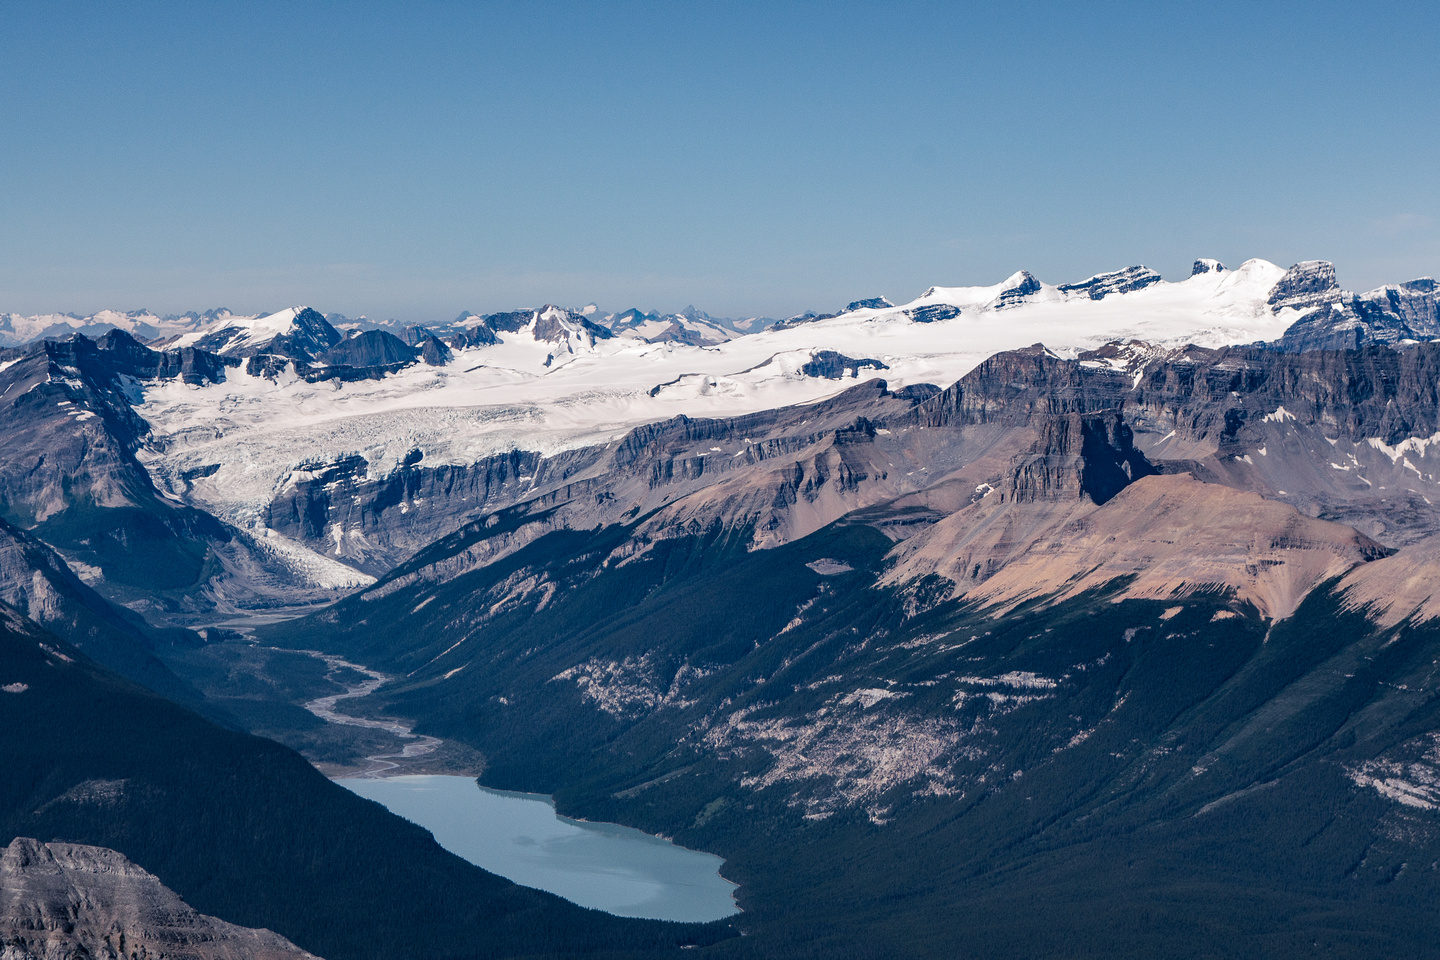 Glacier Lake with the Lyell Icefield rising to the 5 Lyell 11,000ers - Christian, Walter, Ernest, Edward and Rudolph (L to R).